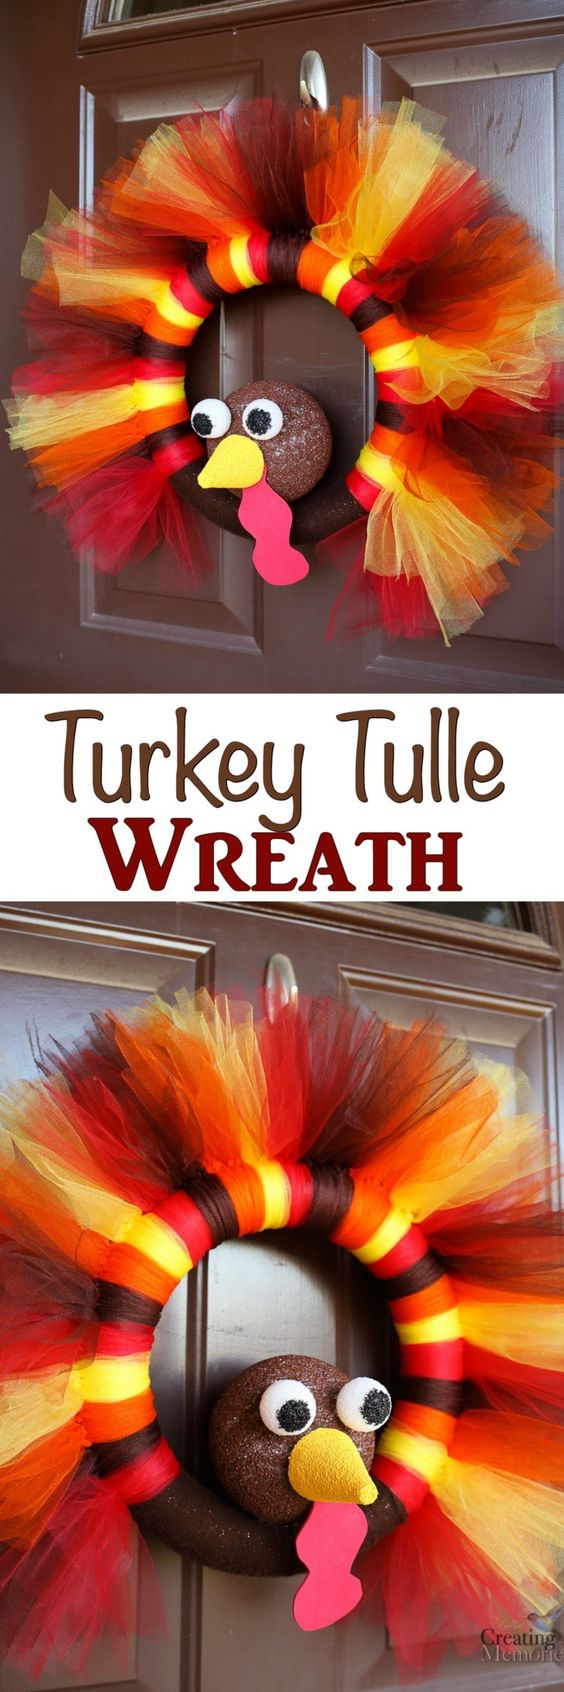 DIY Turkey Tulle Wreath.